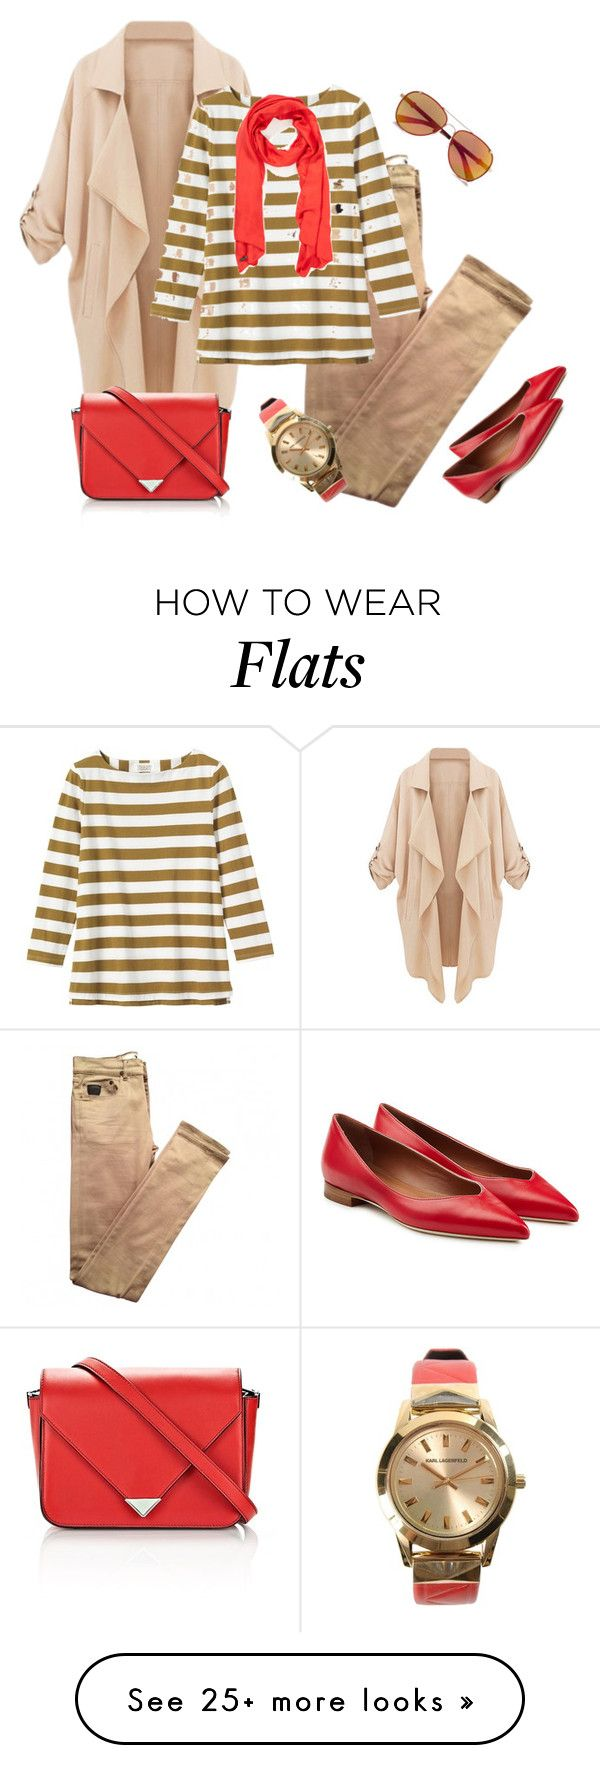 """outfit 3145"" by natalyag on Polyvore featuring Malone Souliers, Alexander Wang, April 77, Toast, Faliero Sarti, Karl Lagerfeld, River Island, women's clothing, women's fashion and women"